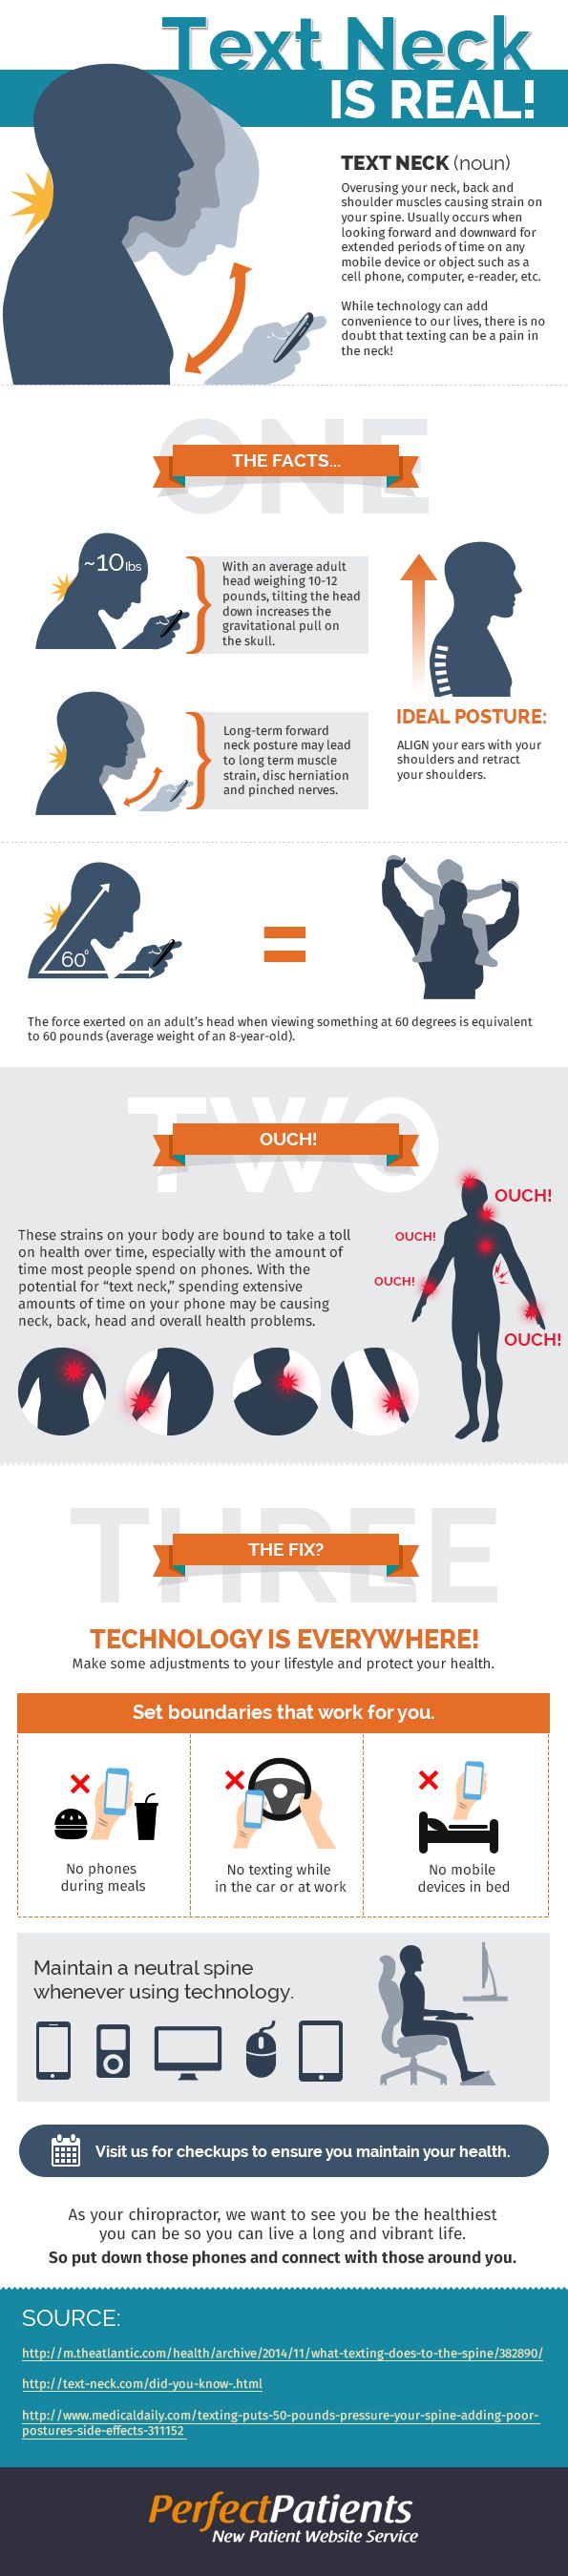 Are you currently reading this while hunched over your phone? If so, here's a very scary wake up call. Text neck is real. Read this Infographic and learn all about text neck. And remember, you only get one neck. TREAT IT WELL. Source:http://www.healinghandsaurora.com/